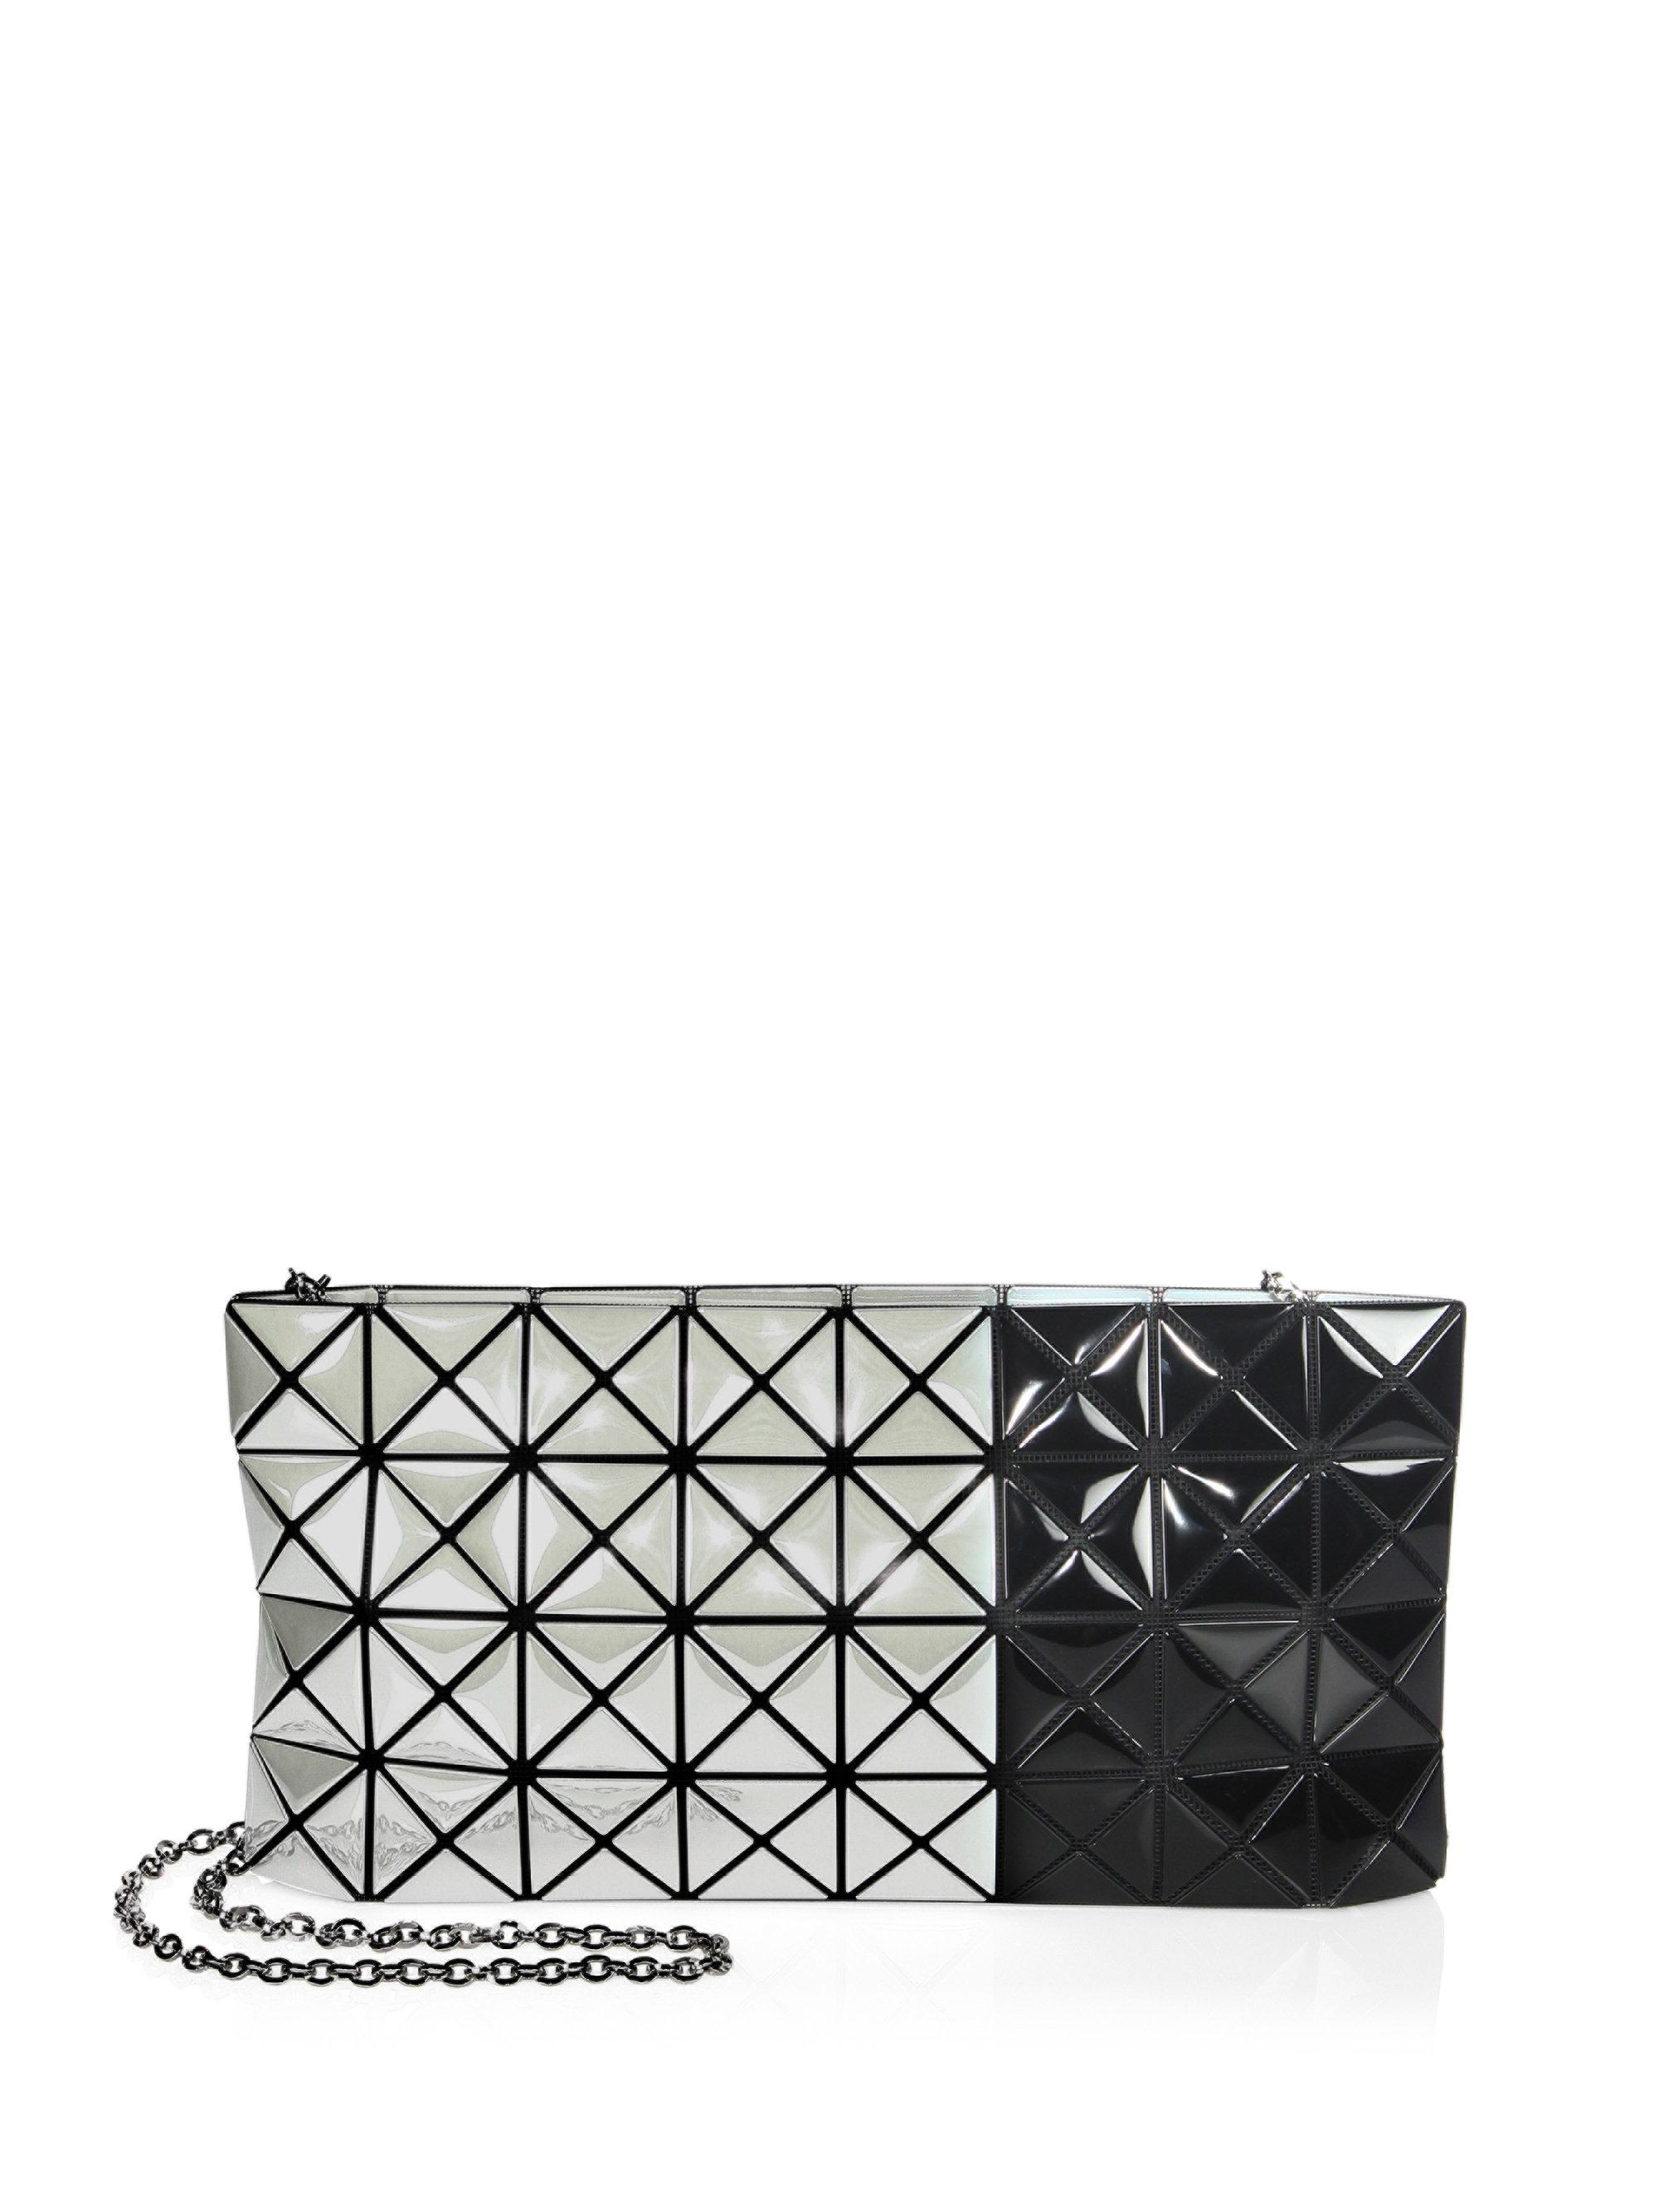 2e54af256d Bao Bao Issey Miyake Prism Two-tone Chain Clutch in Black - Save ...